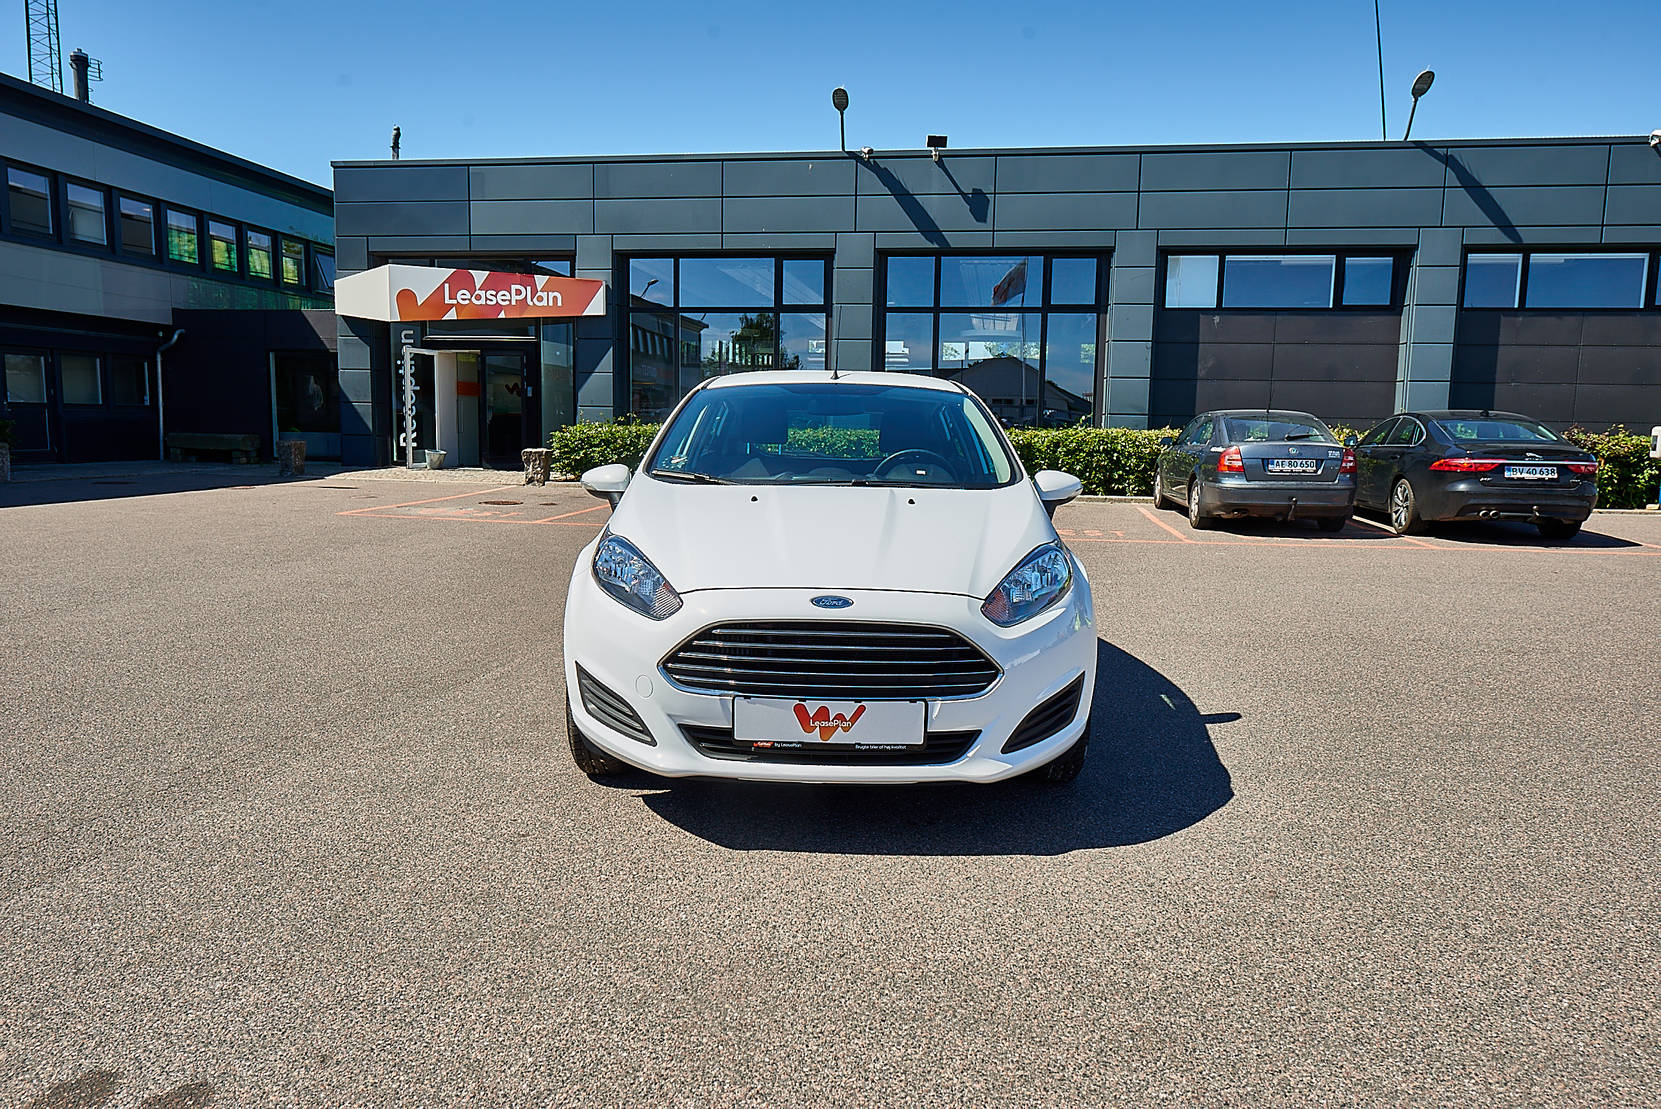 Ford Fiesta 1.6 TDCi Start-Stop ECOnetic, Trend detail2